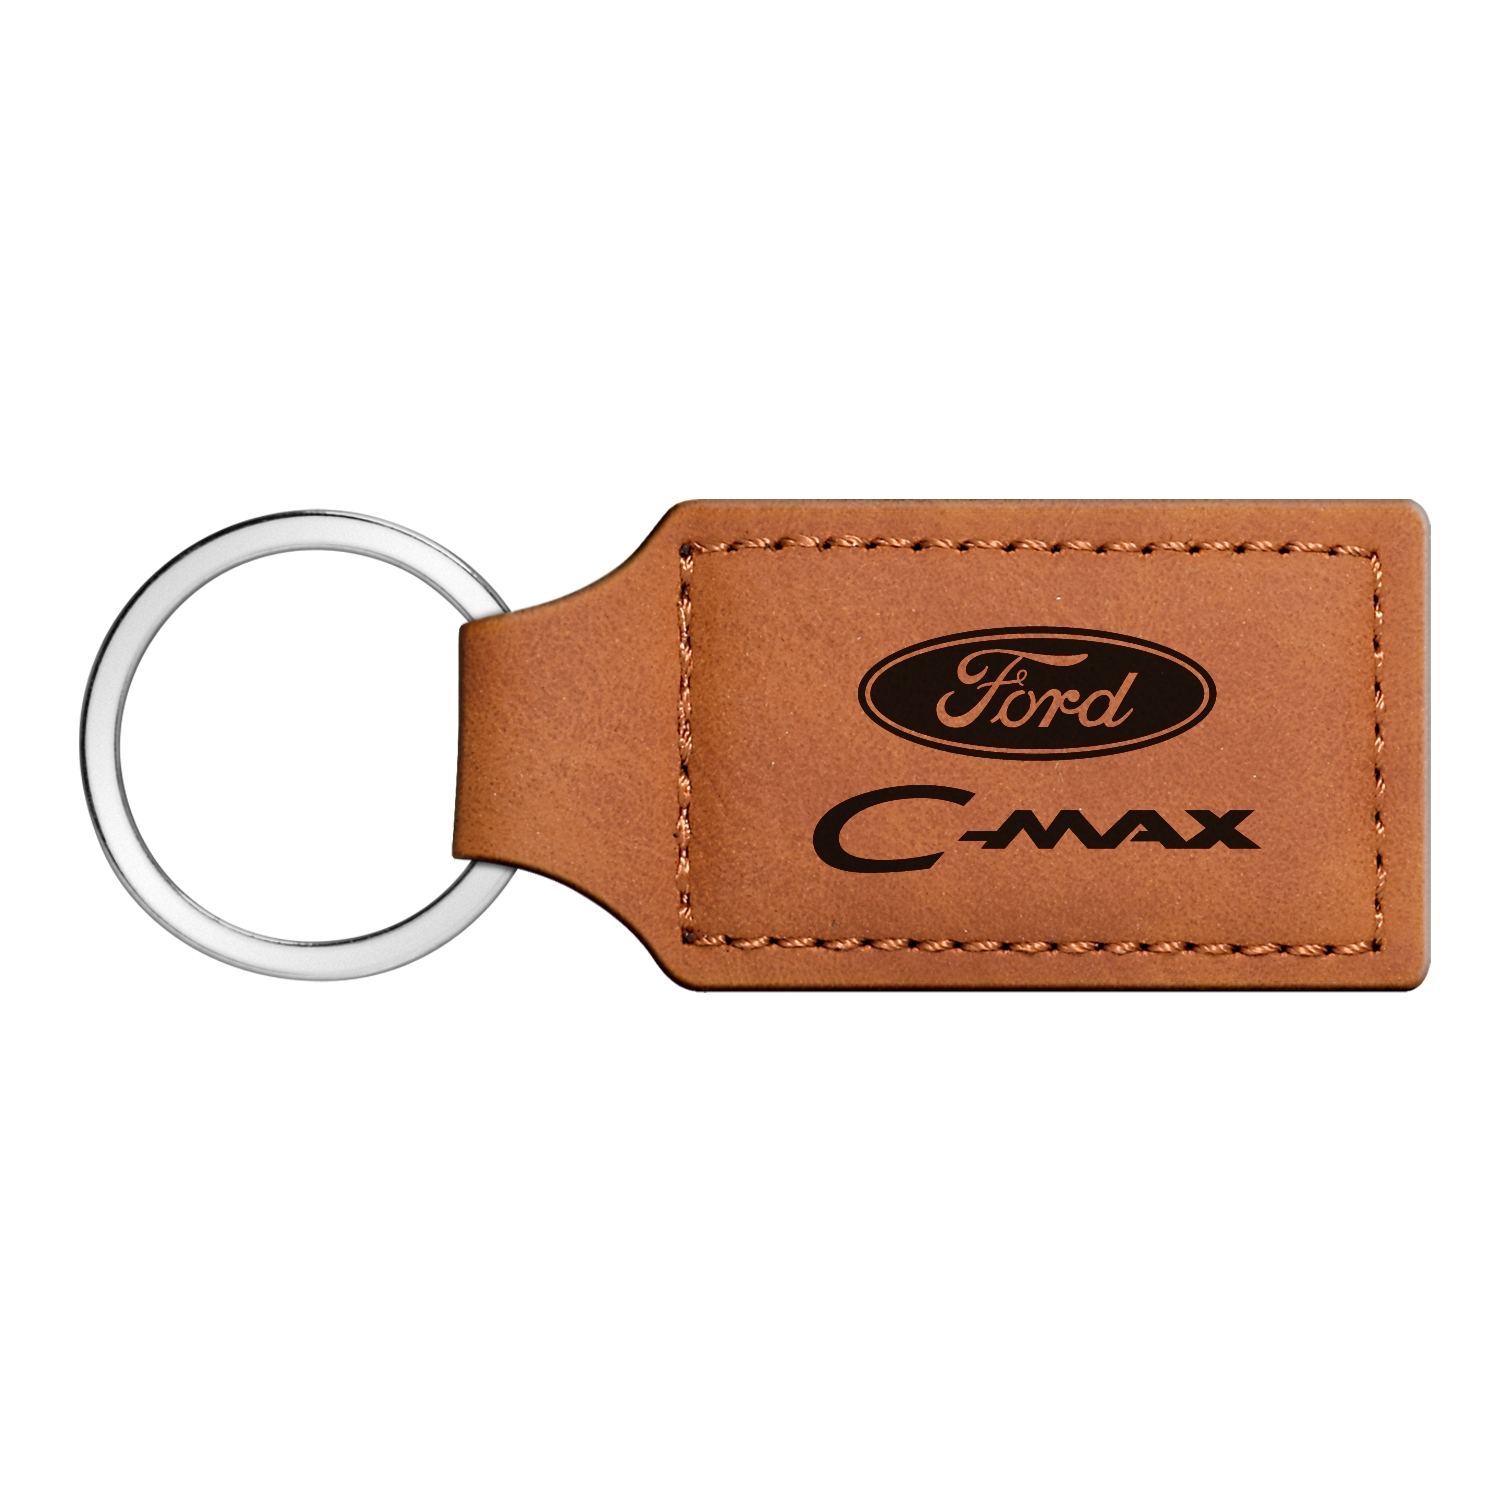 Ford C-Max Rectangular Brown Leather Key Chain